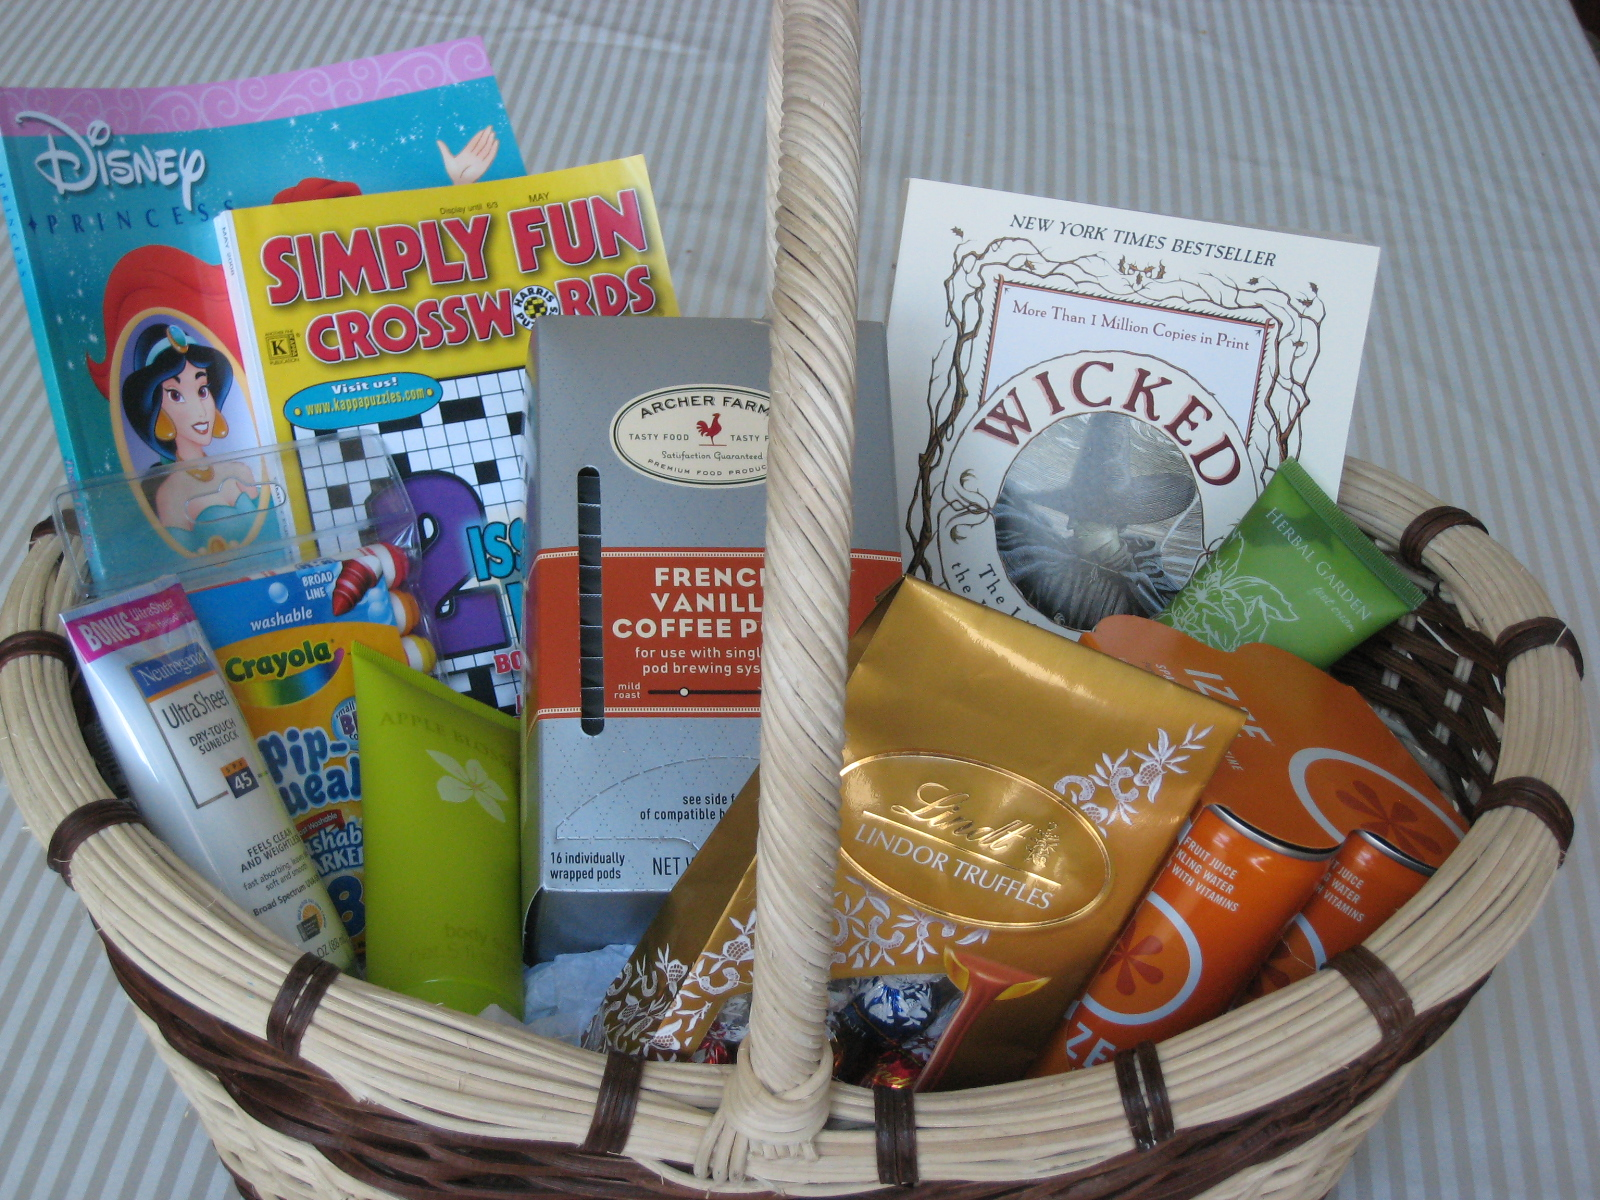 Wedding Gift Basket Ideas For Out Of Town Guests : Hotel baskets for out-of-town guests Chica and Jo